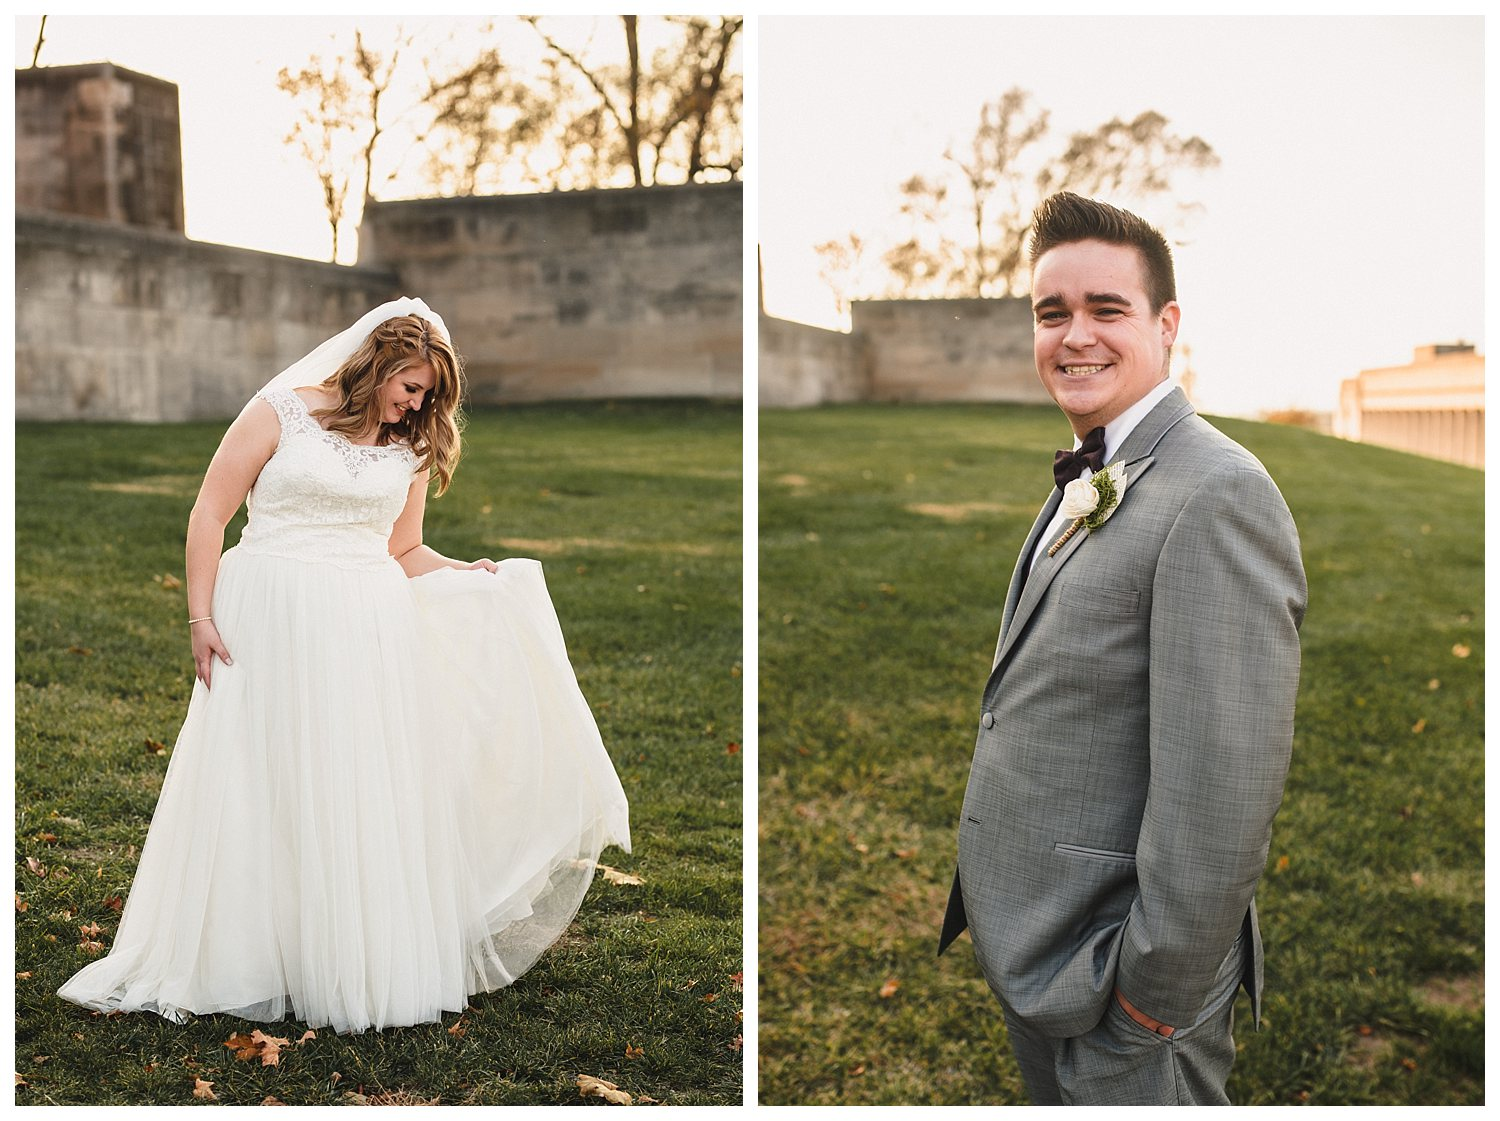 Kelsey_Diane_Photography_Loose_Mansion_Wedding_Photography_Kansas_City_Victor_Lyndsay_0367.jpg